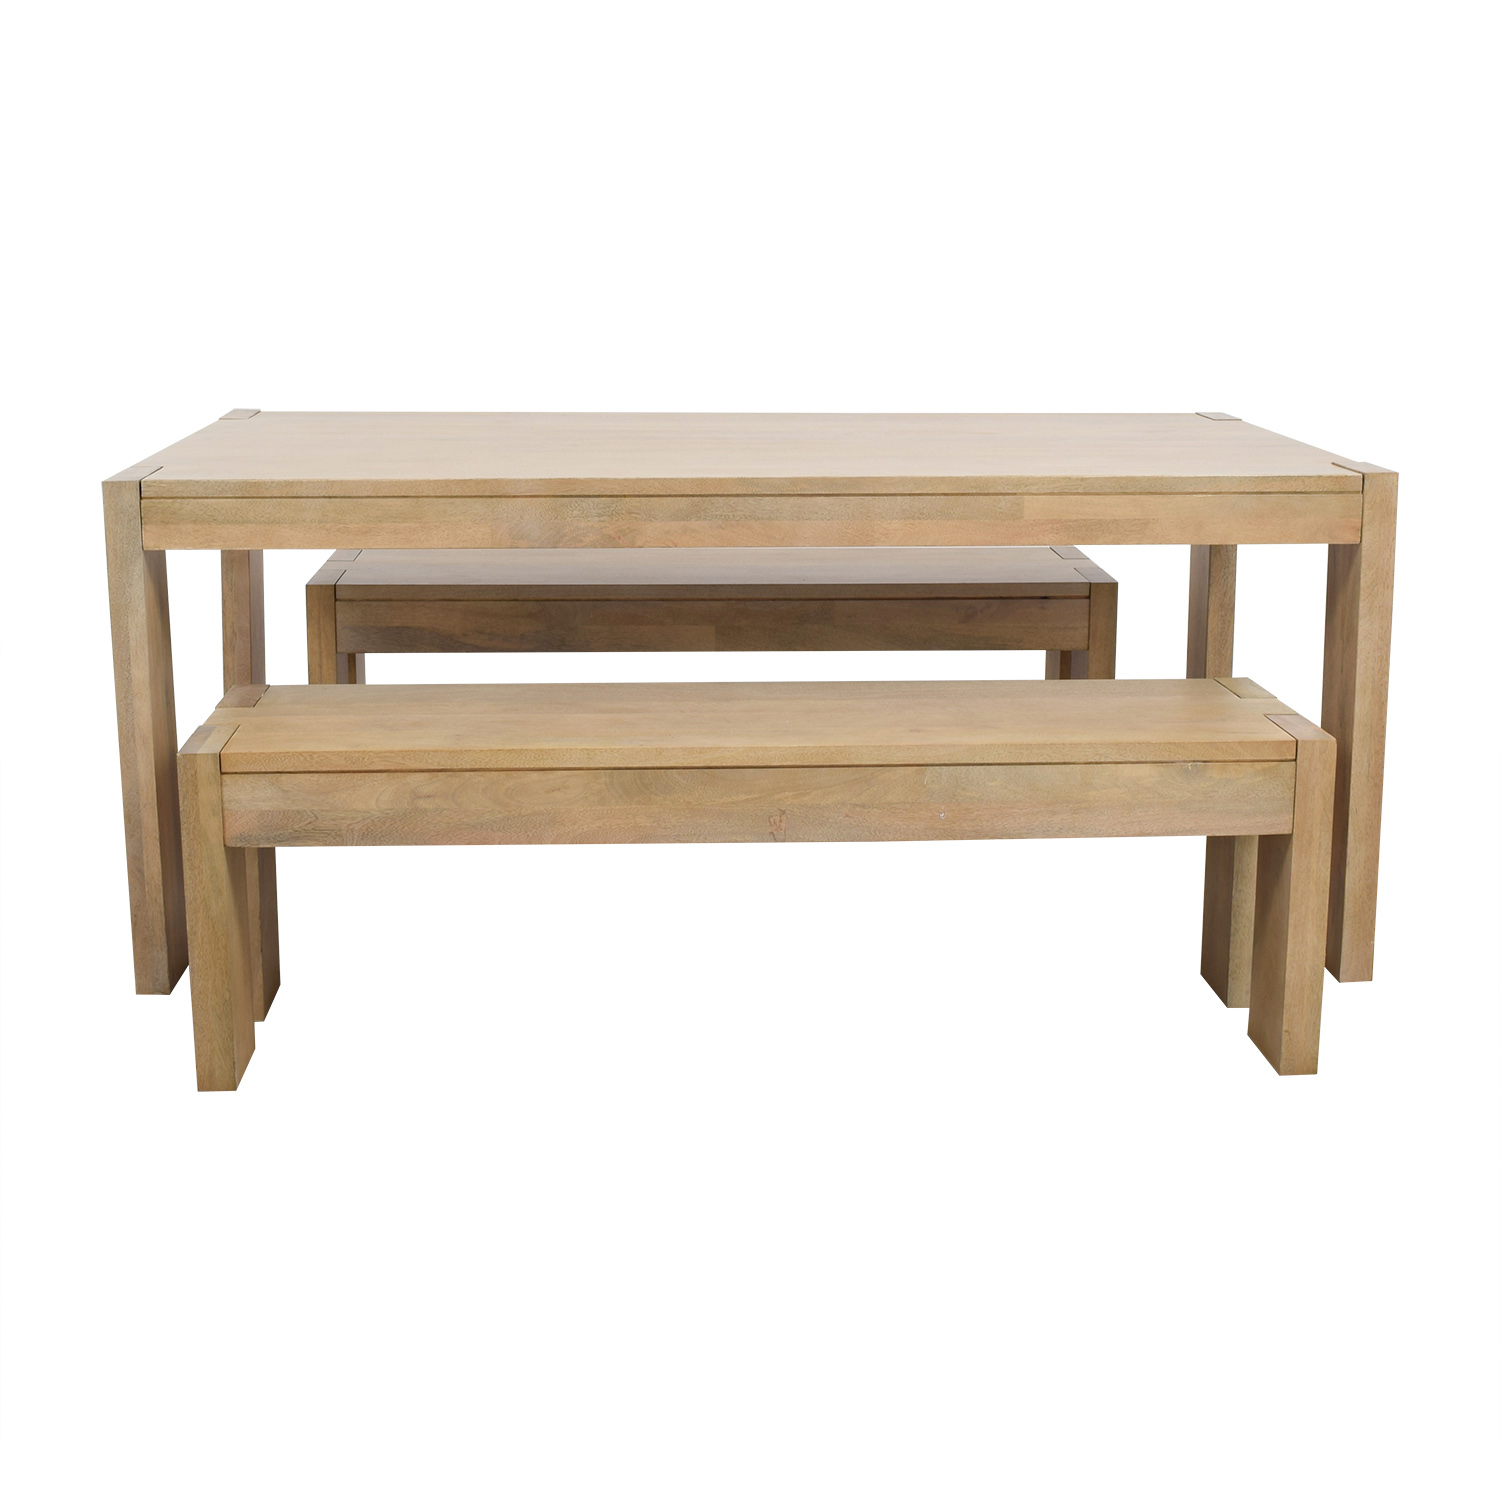 West Elm Boerum Dining Table and Benches West Elm